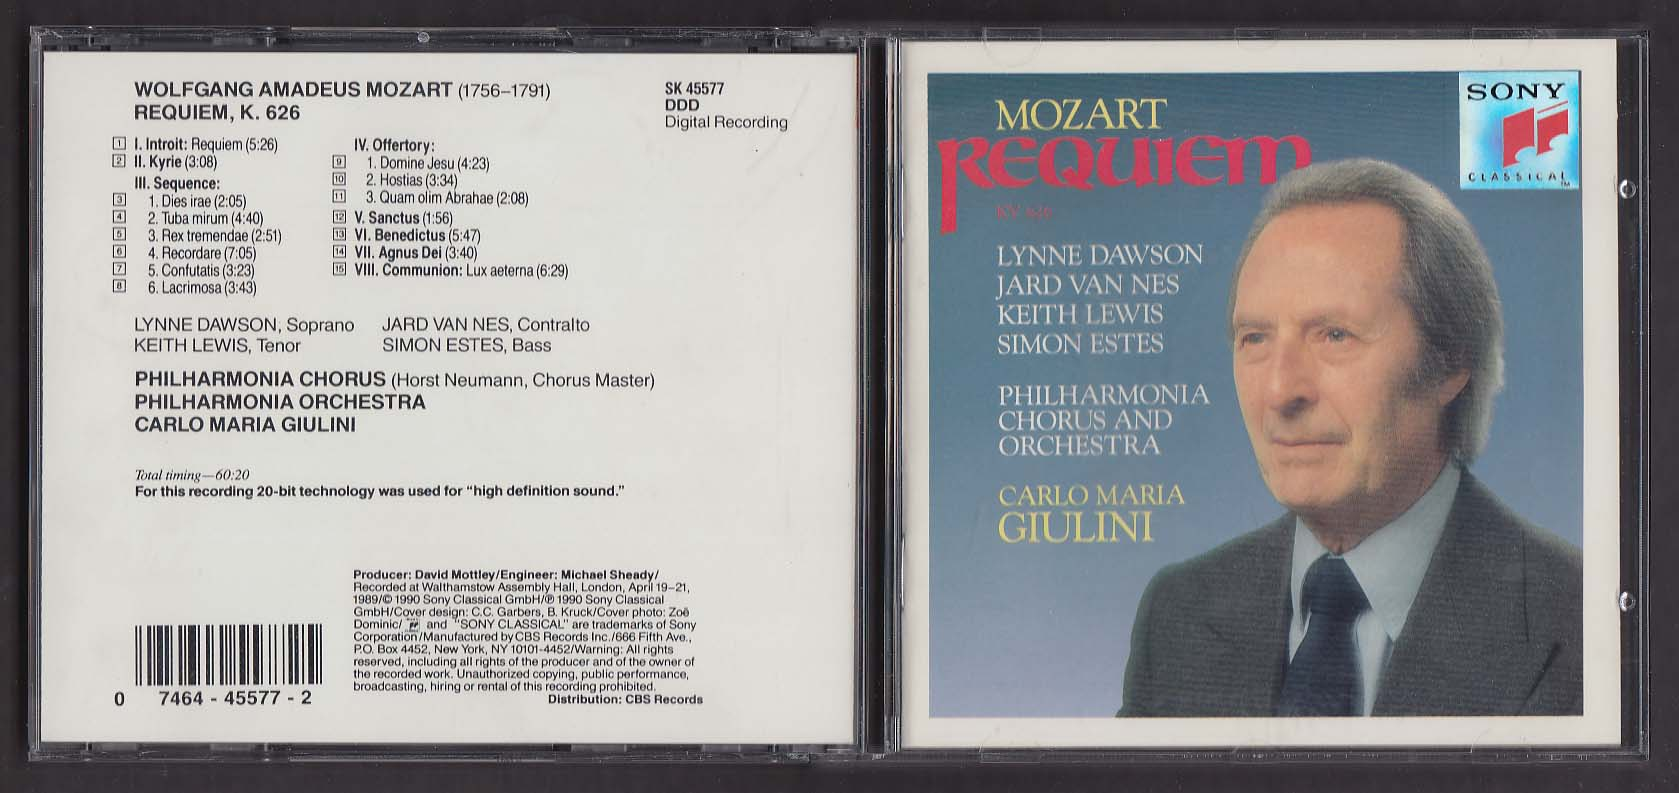 Image for Mozart Requiem KV 626 Philharmonia Orchestra Giulini SK 45577 Sony CD 1990